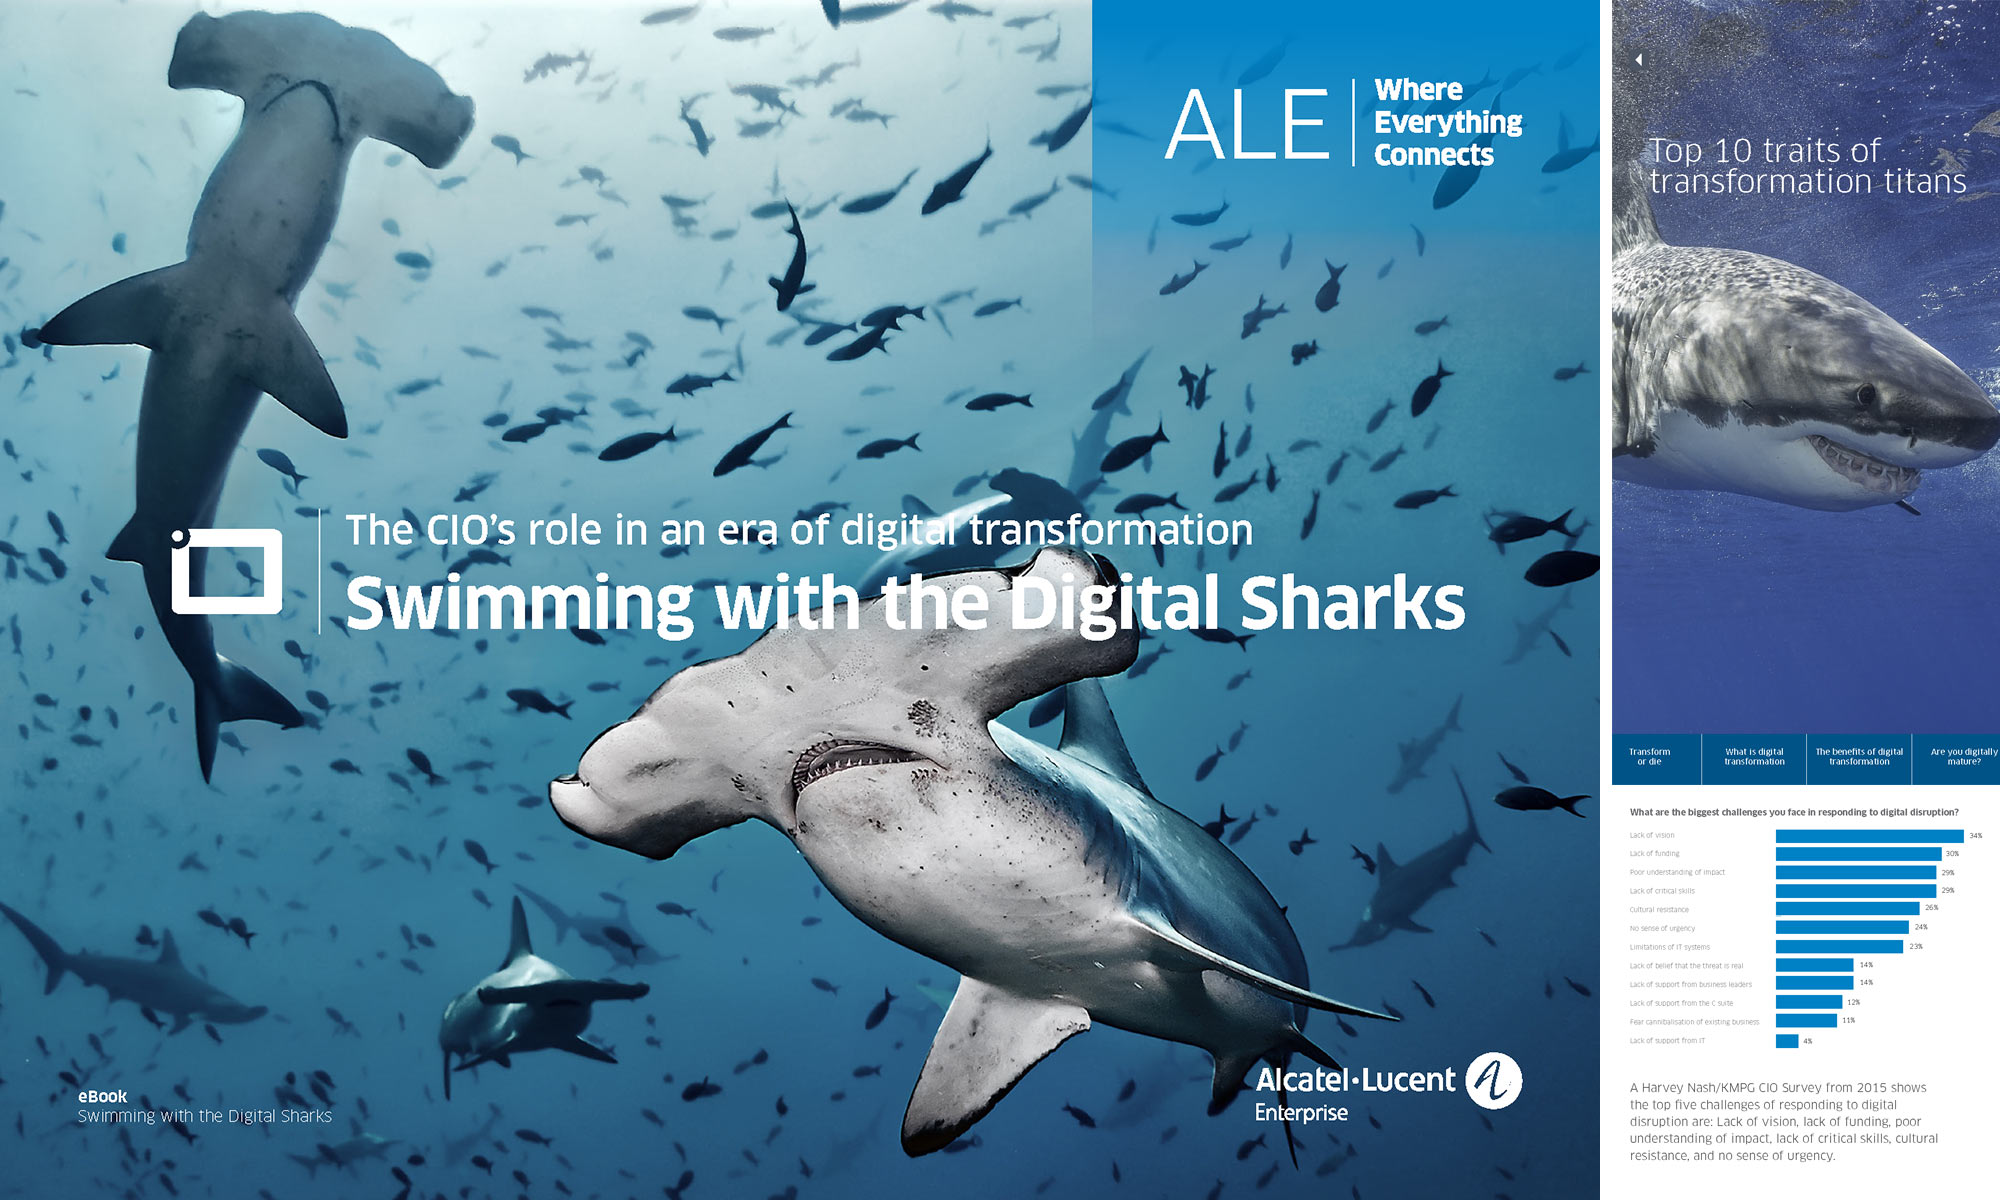 https://edyoungbloodnet.files.wordpress.com/2018/03/swimming-with-the-digital-sharks_ale.pdf